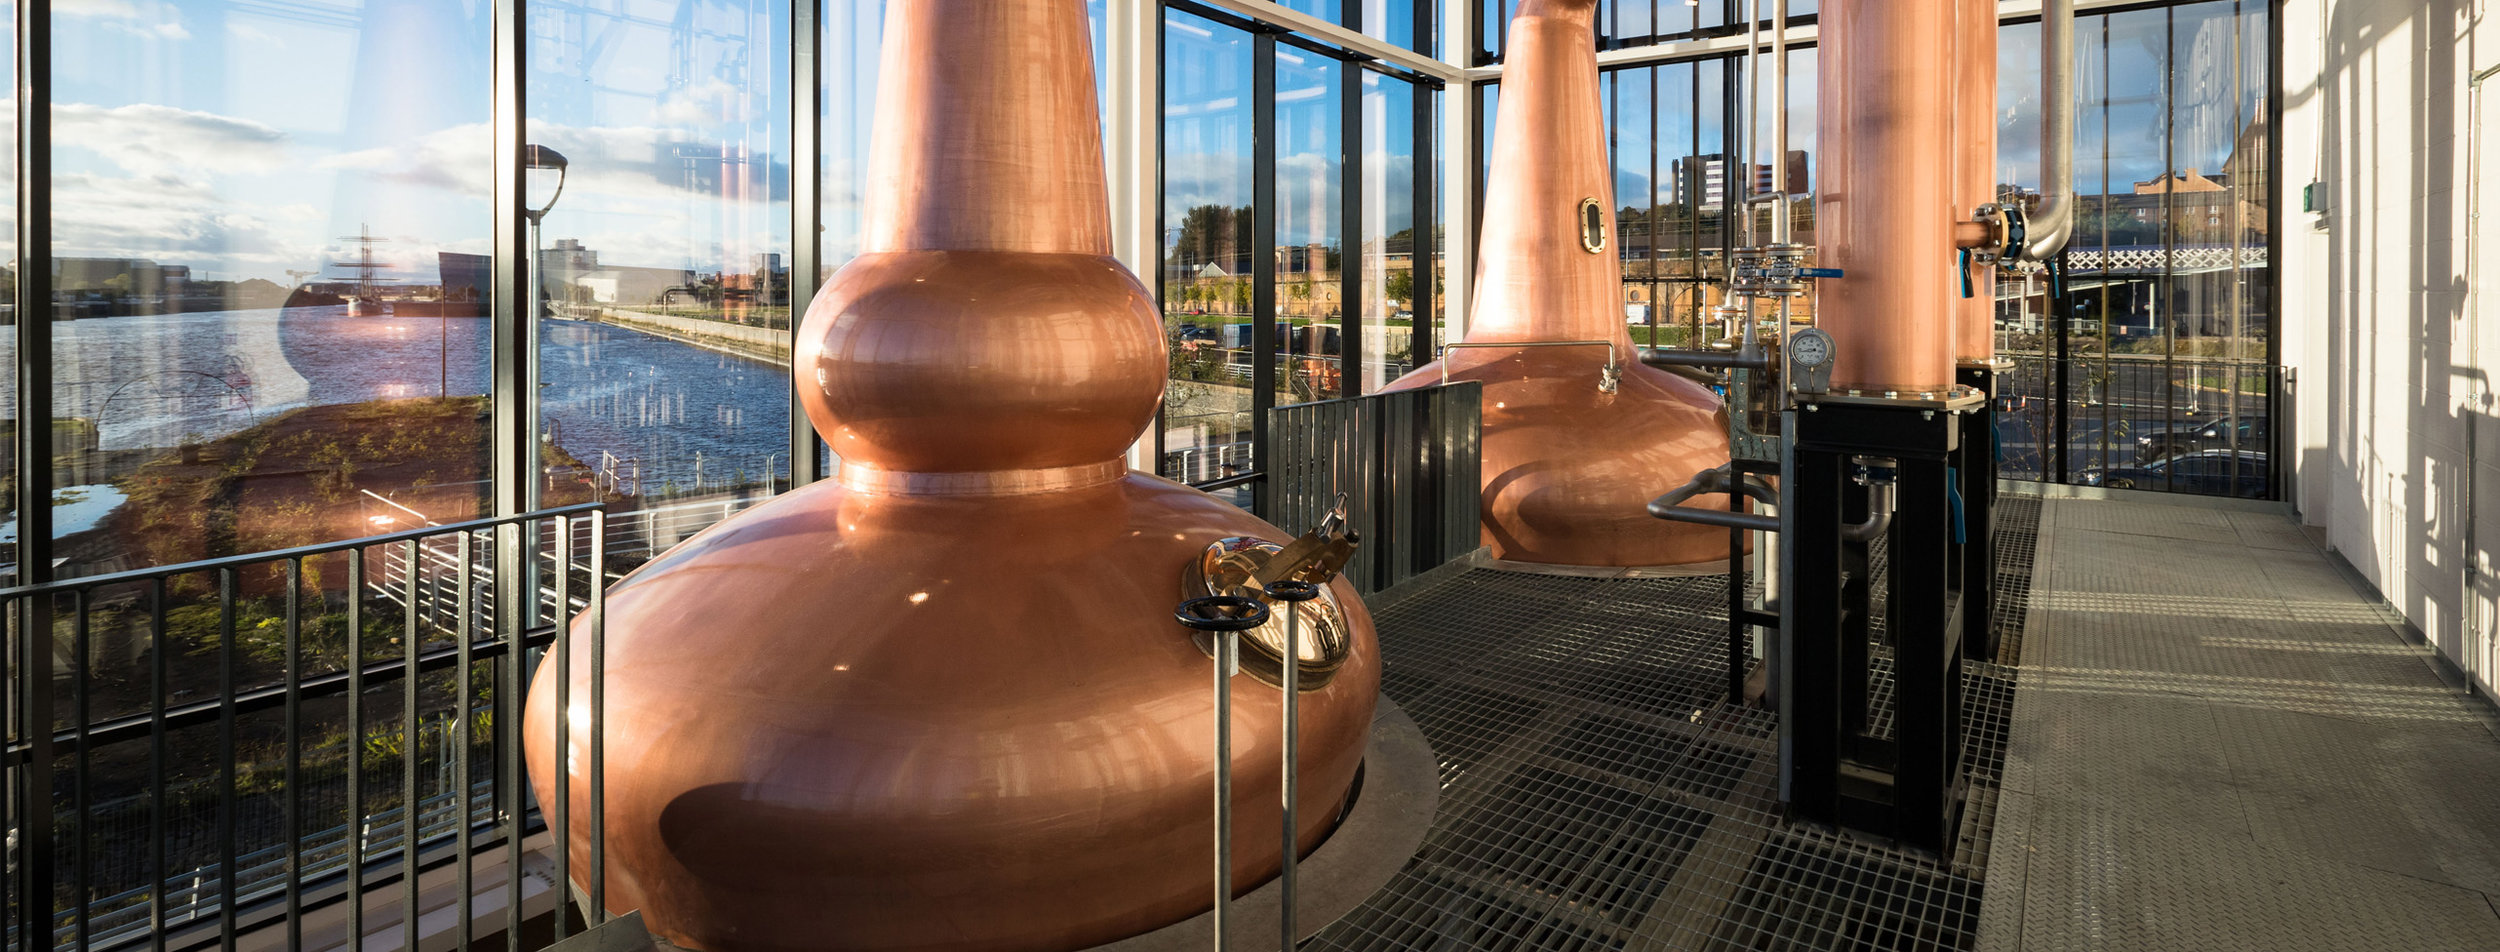 the-clydeside-distillery.jpg